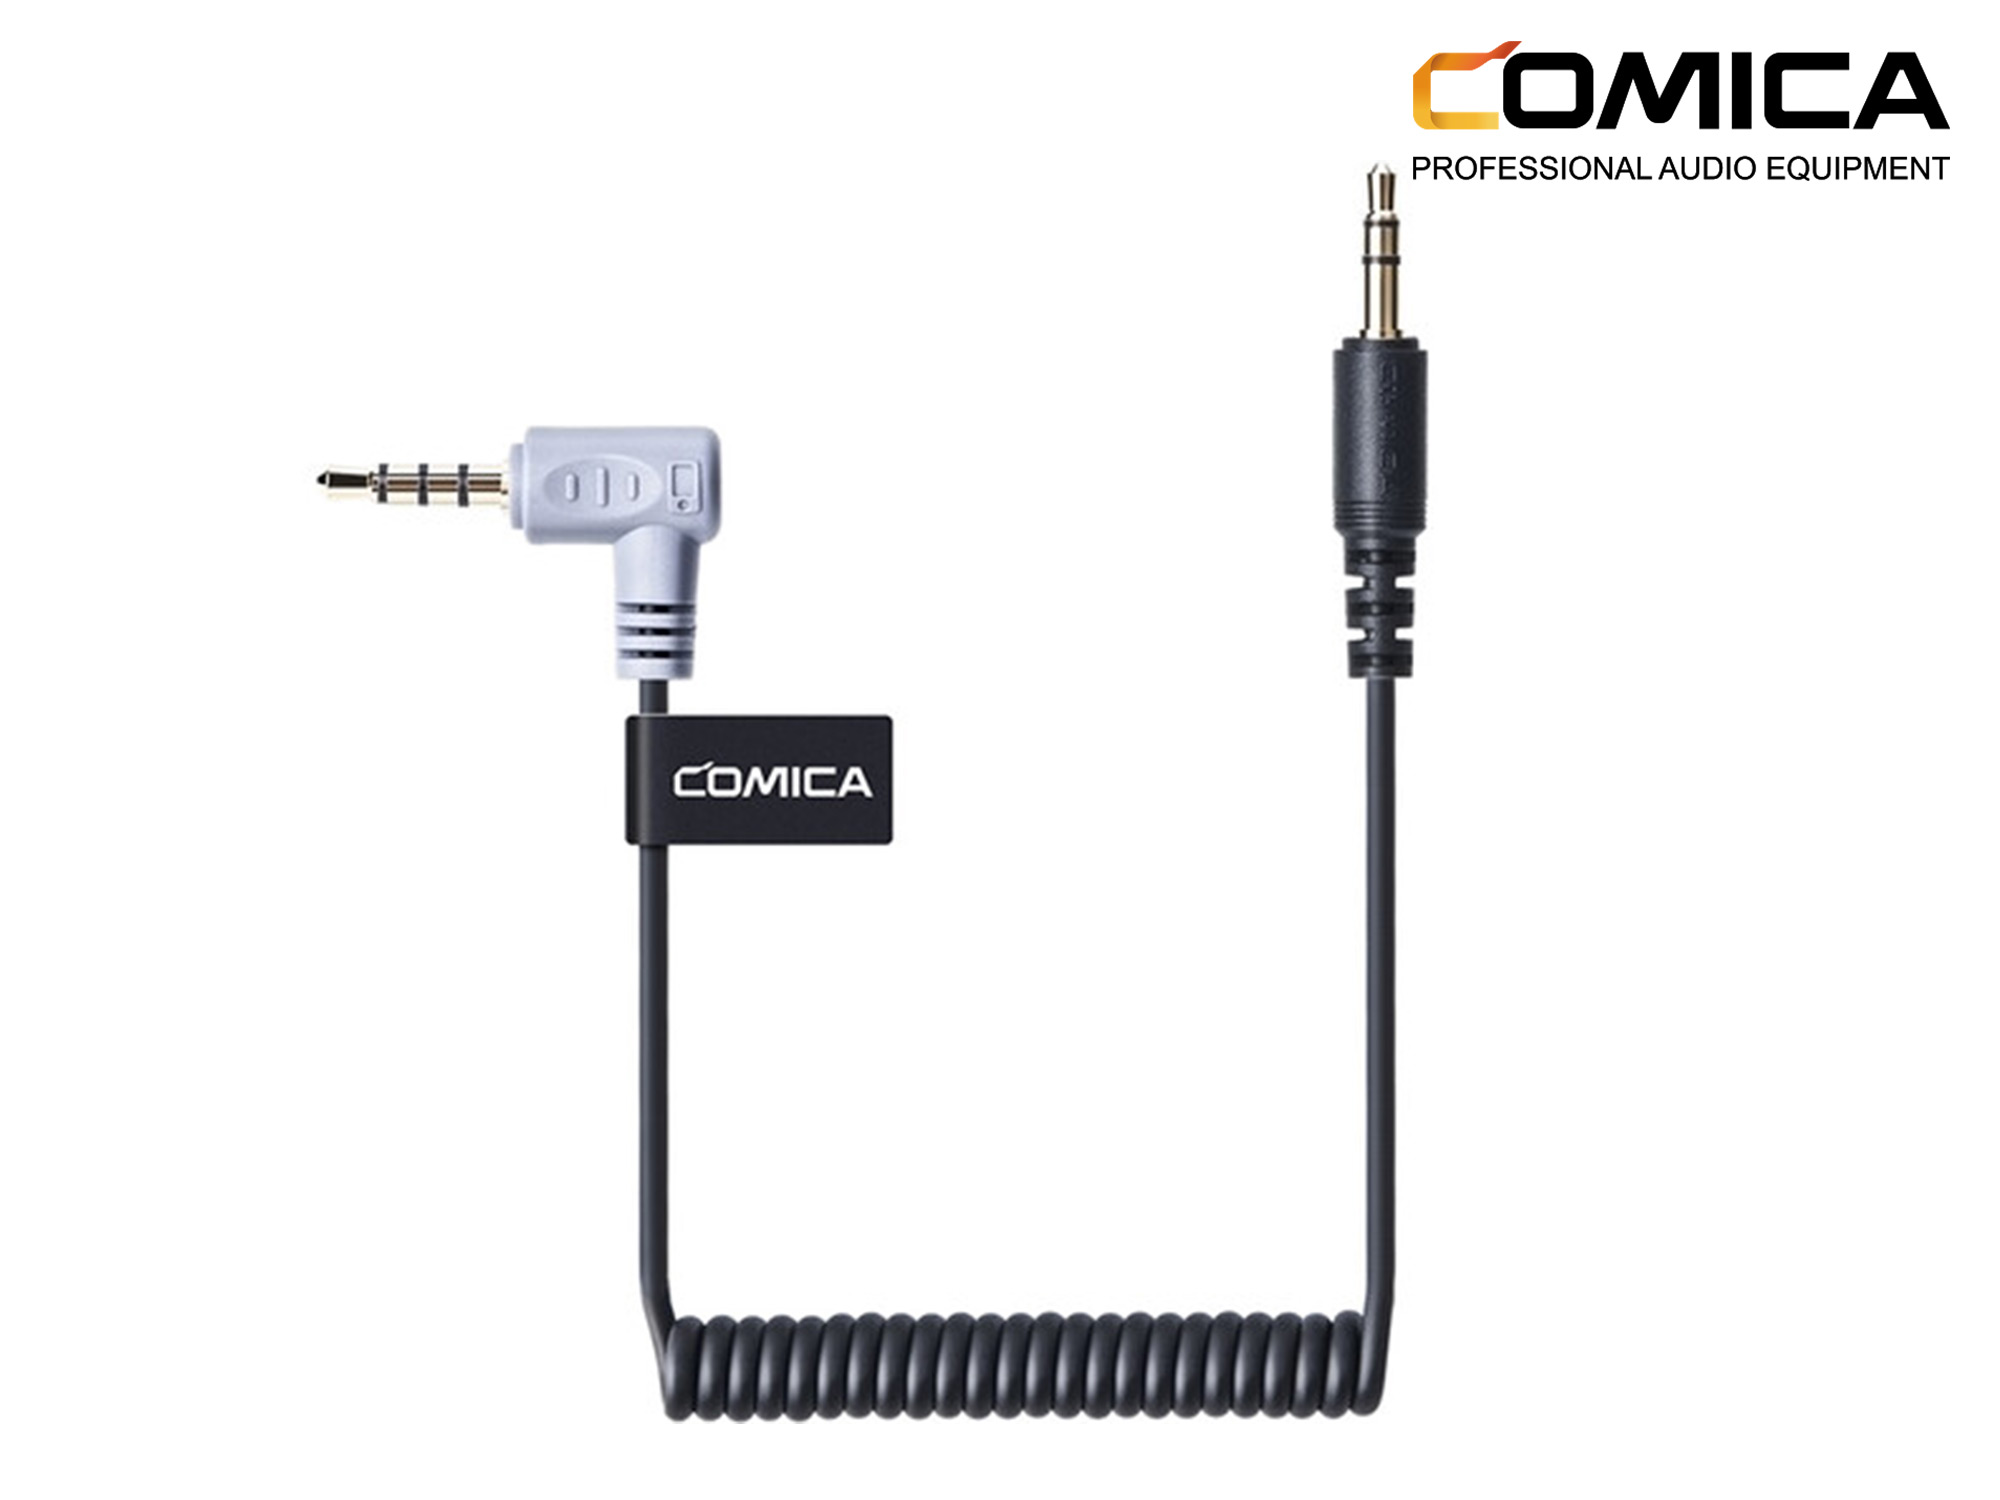 Comica Audio 3.5mm TRS -TRRS Audio Cable for Smartphone